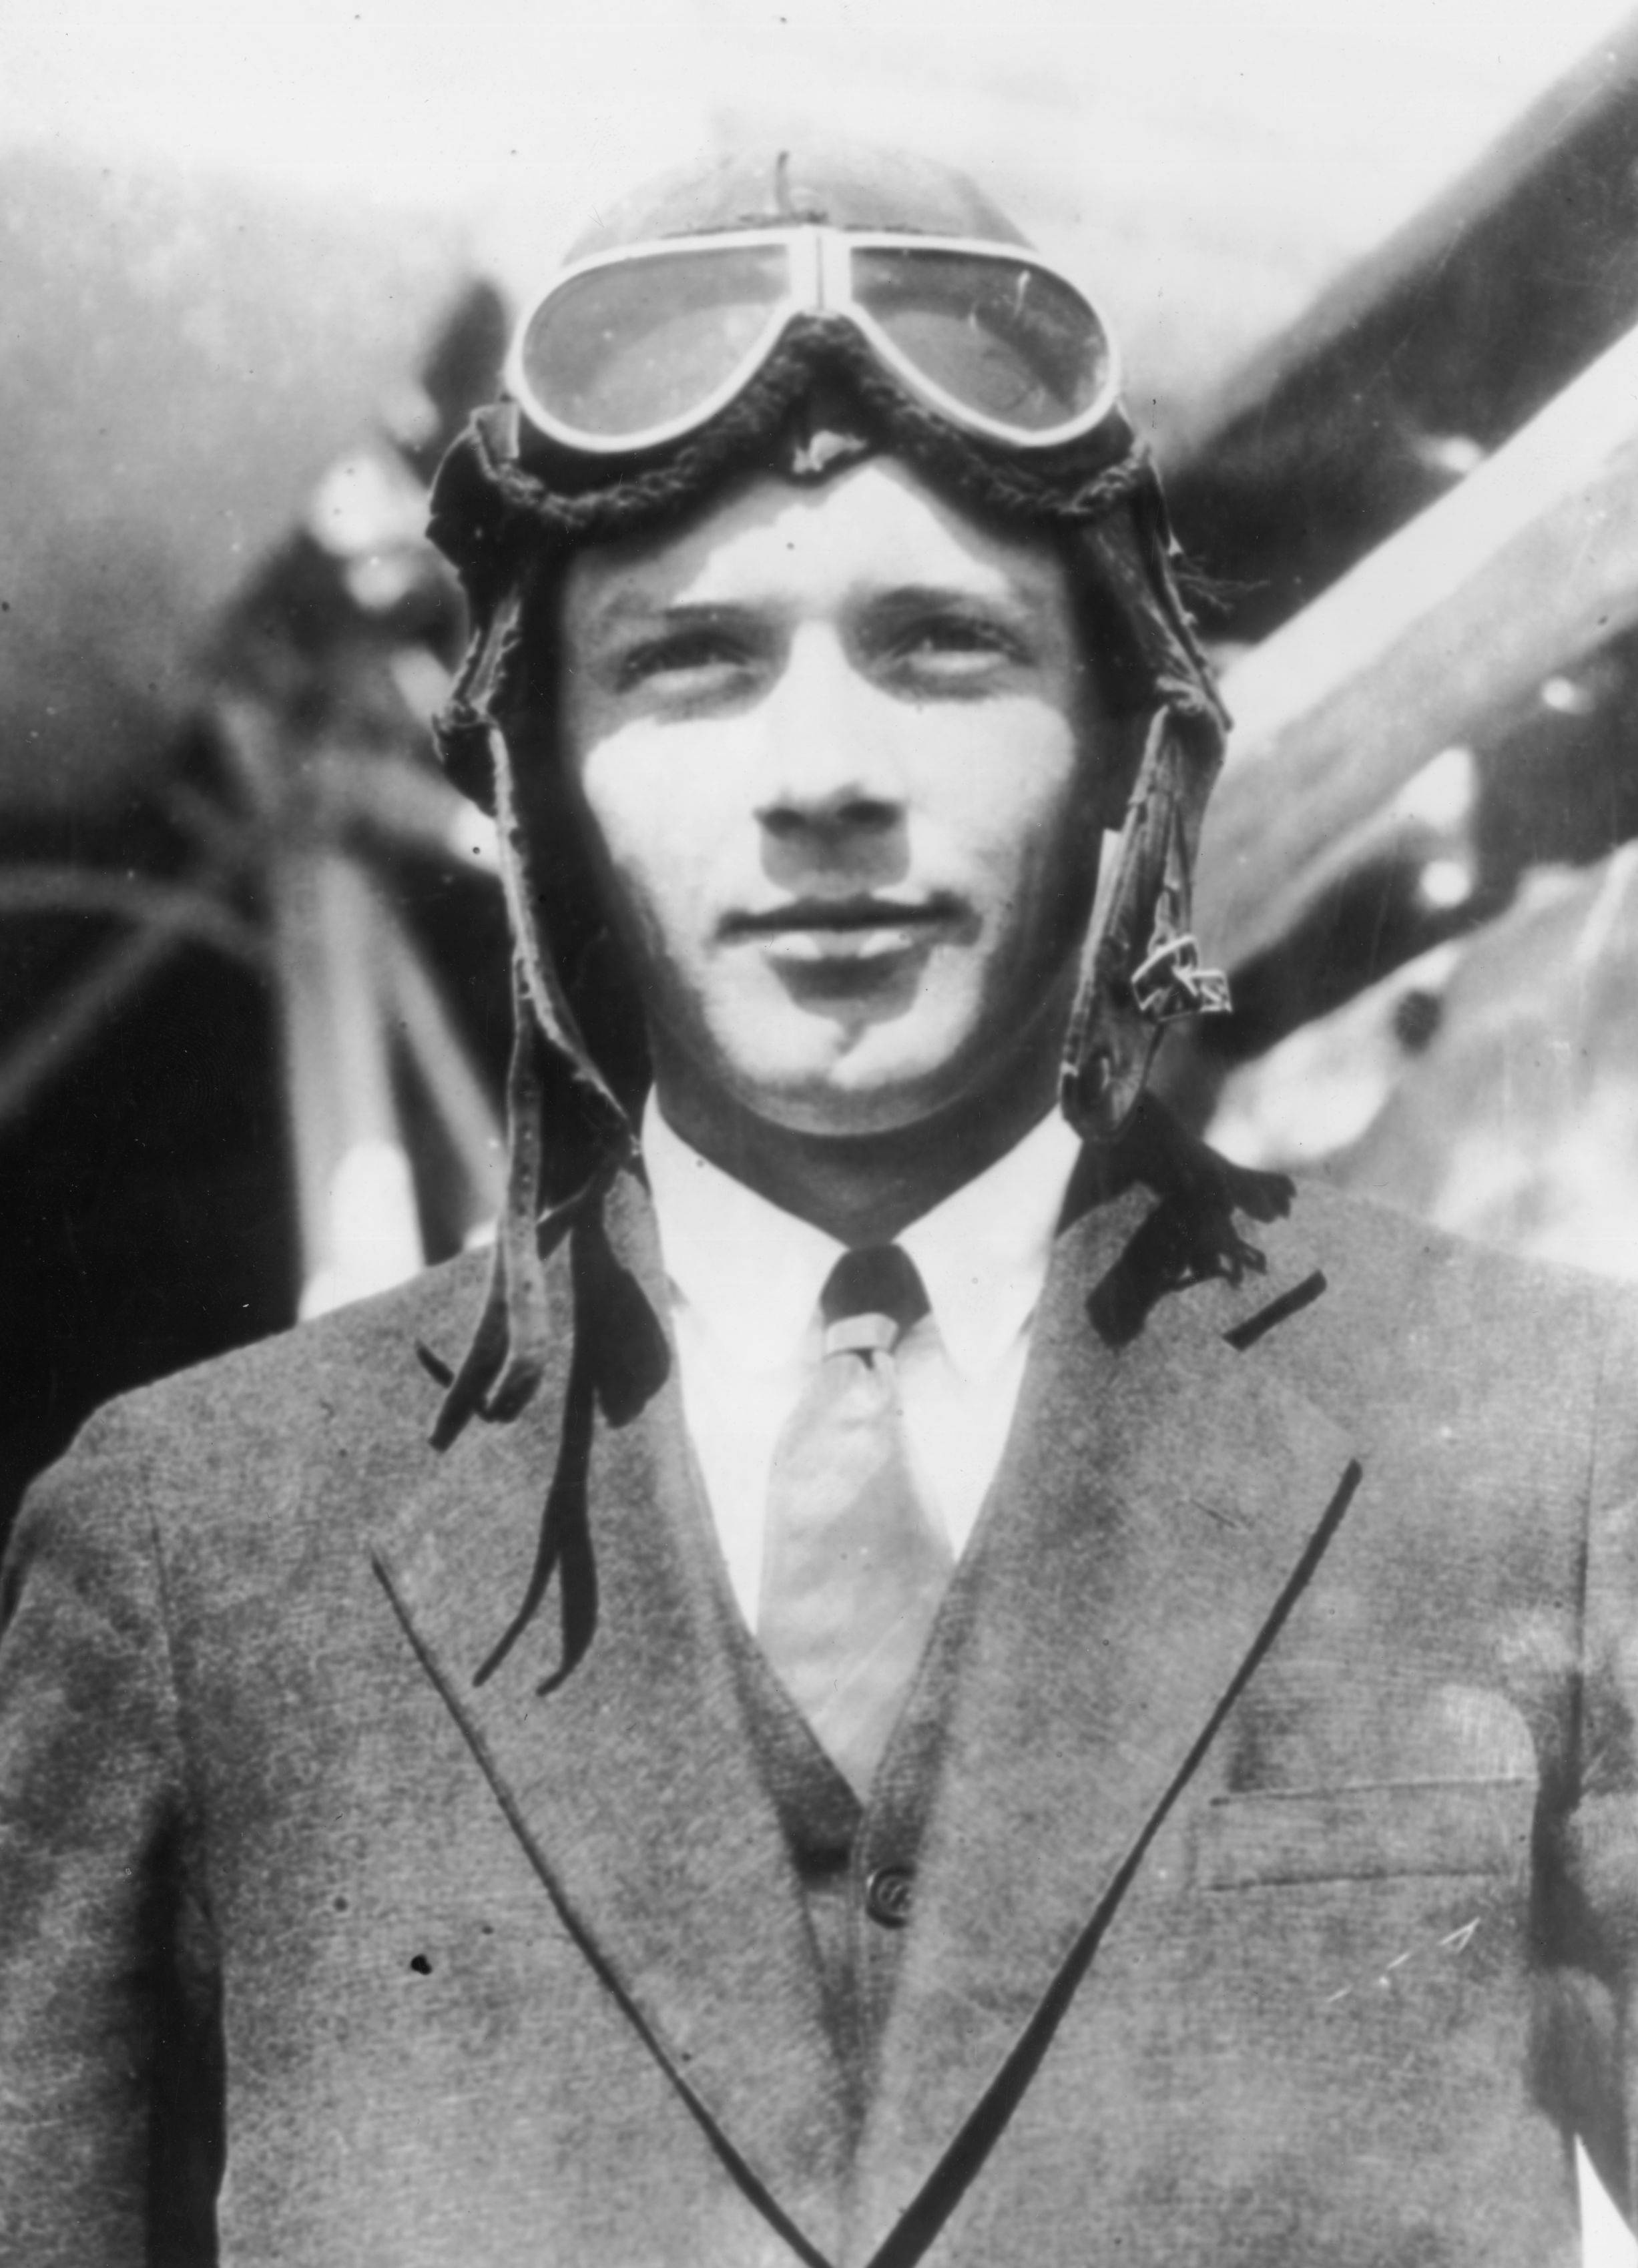 a biography of charles lindbergh an american aviator No a biography of charles lindbergh an american aviator in 1927 the 25-year-old u.